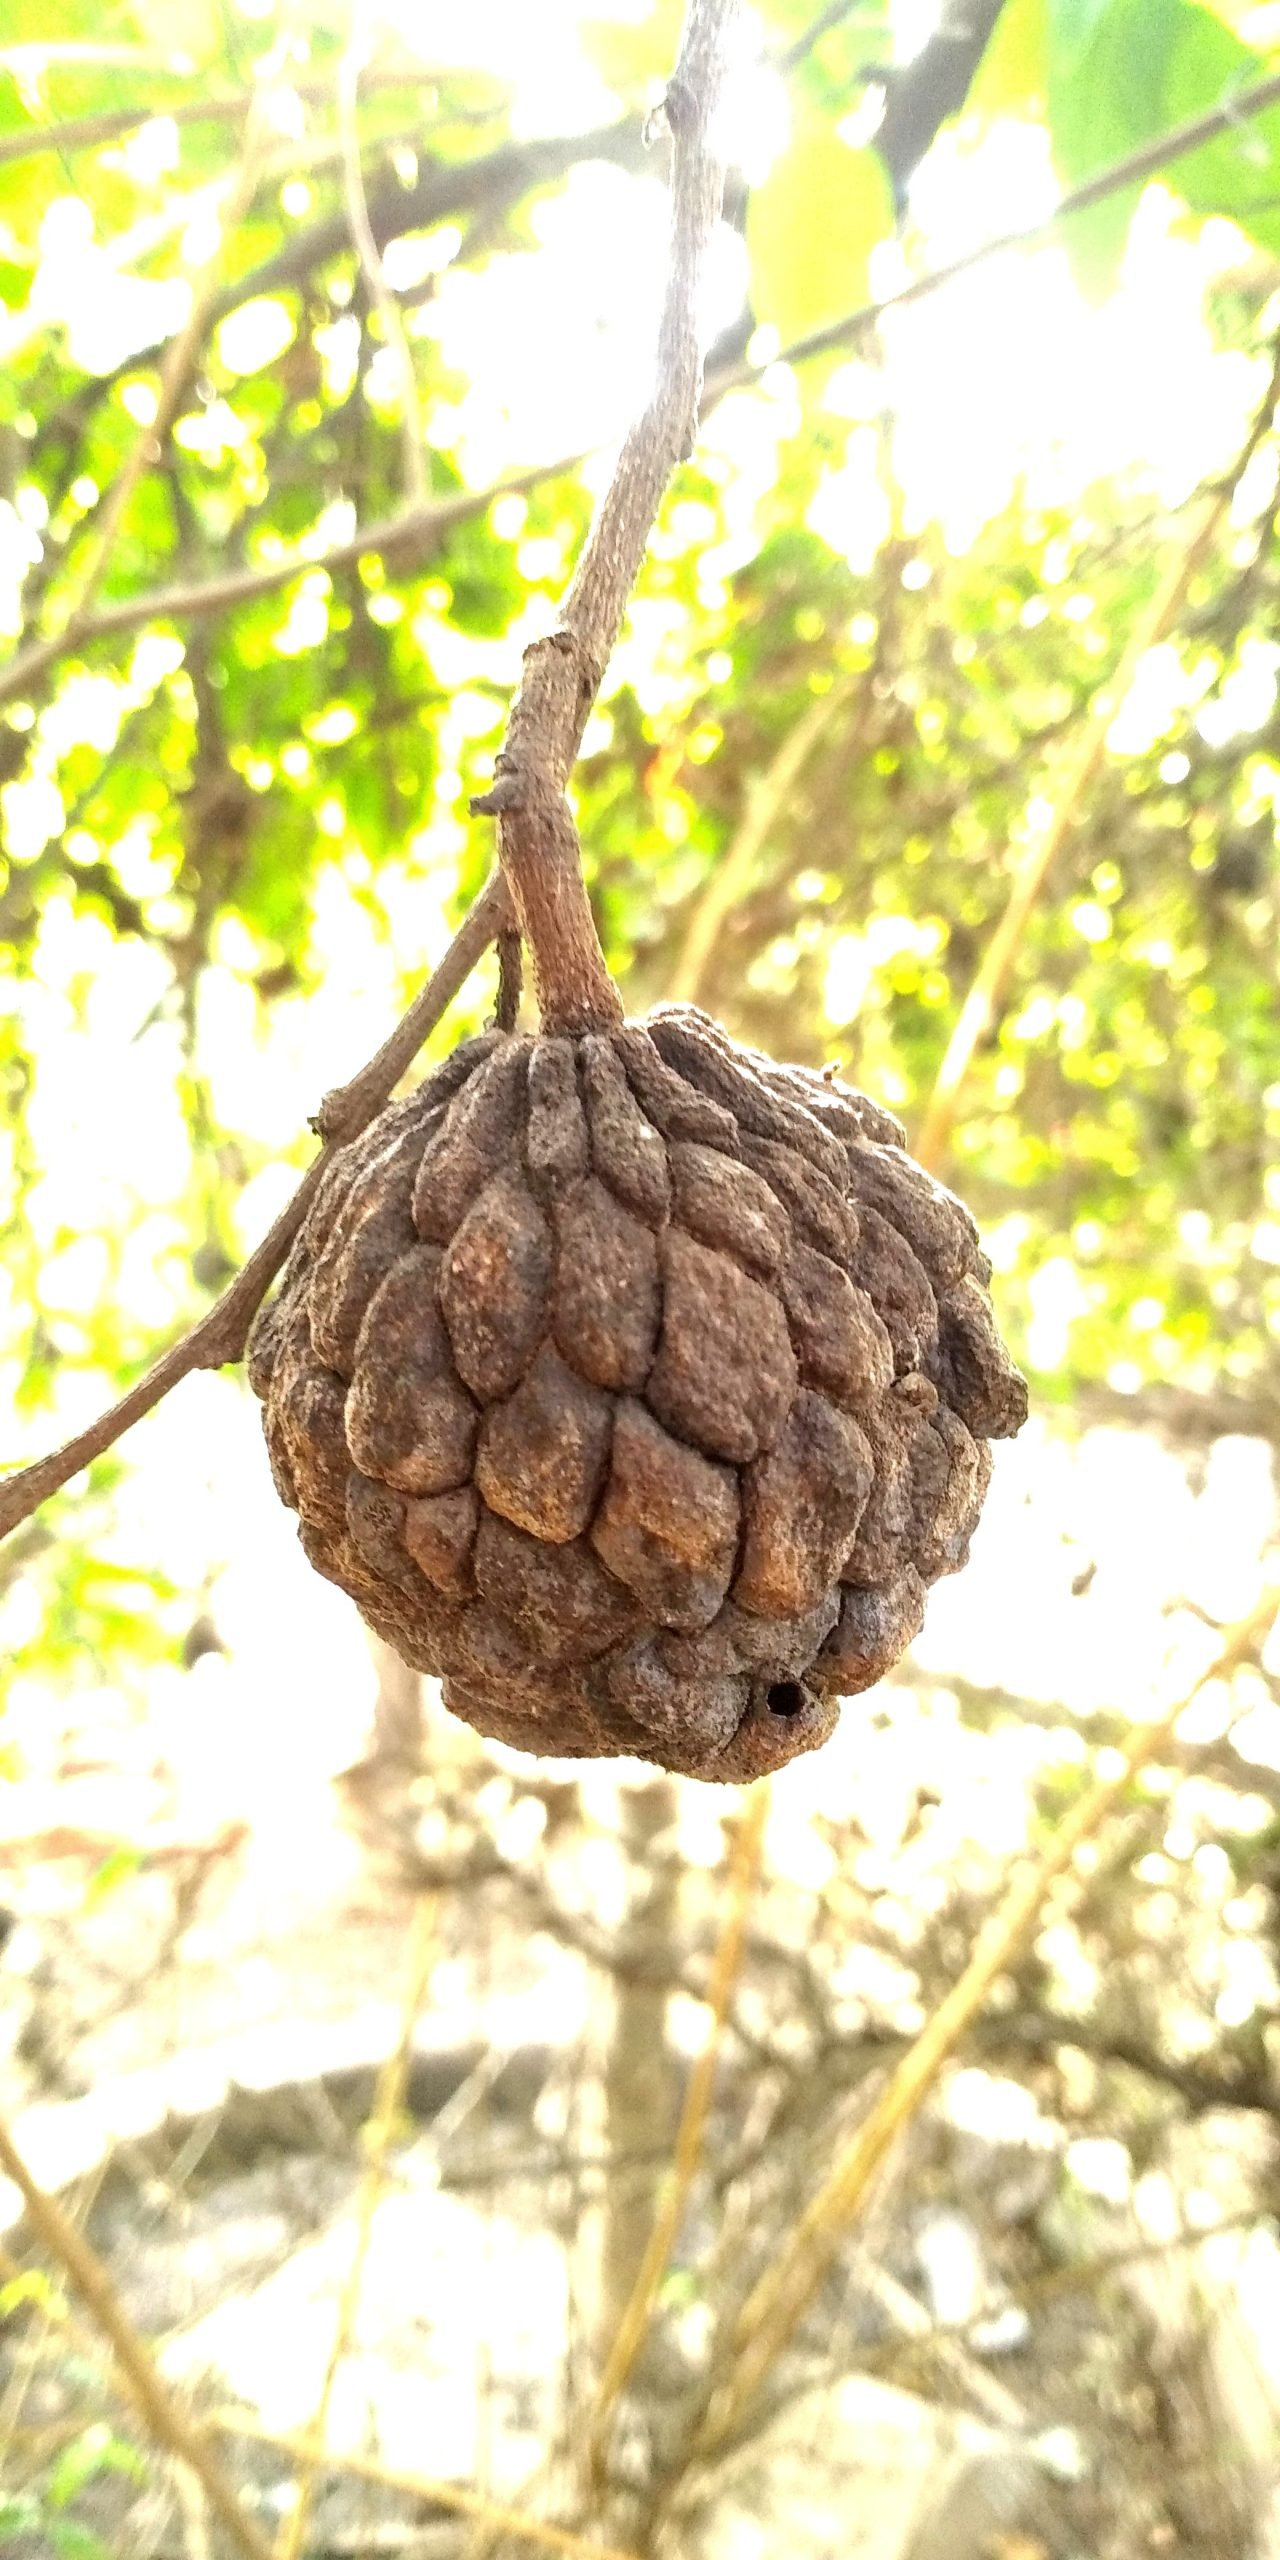 Sugar apple fruit